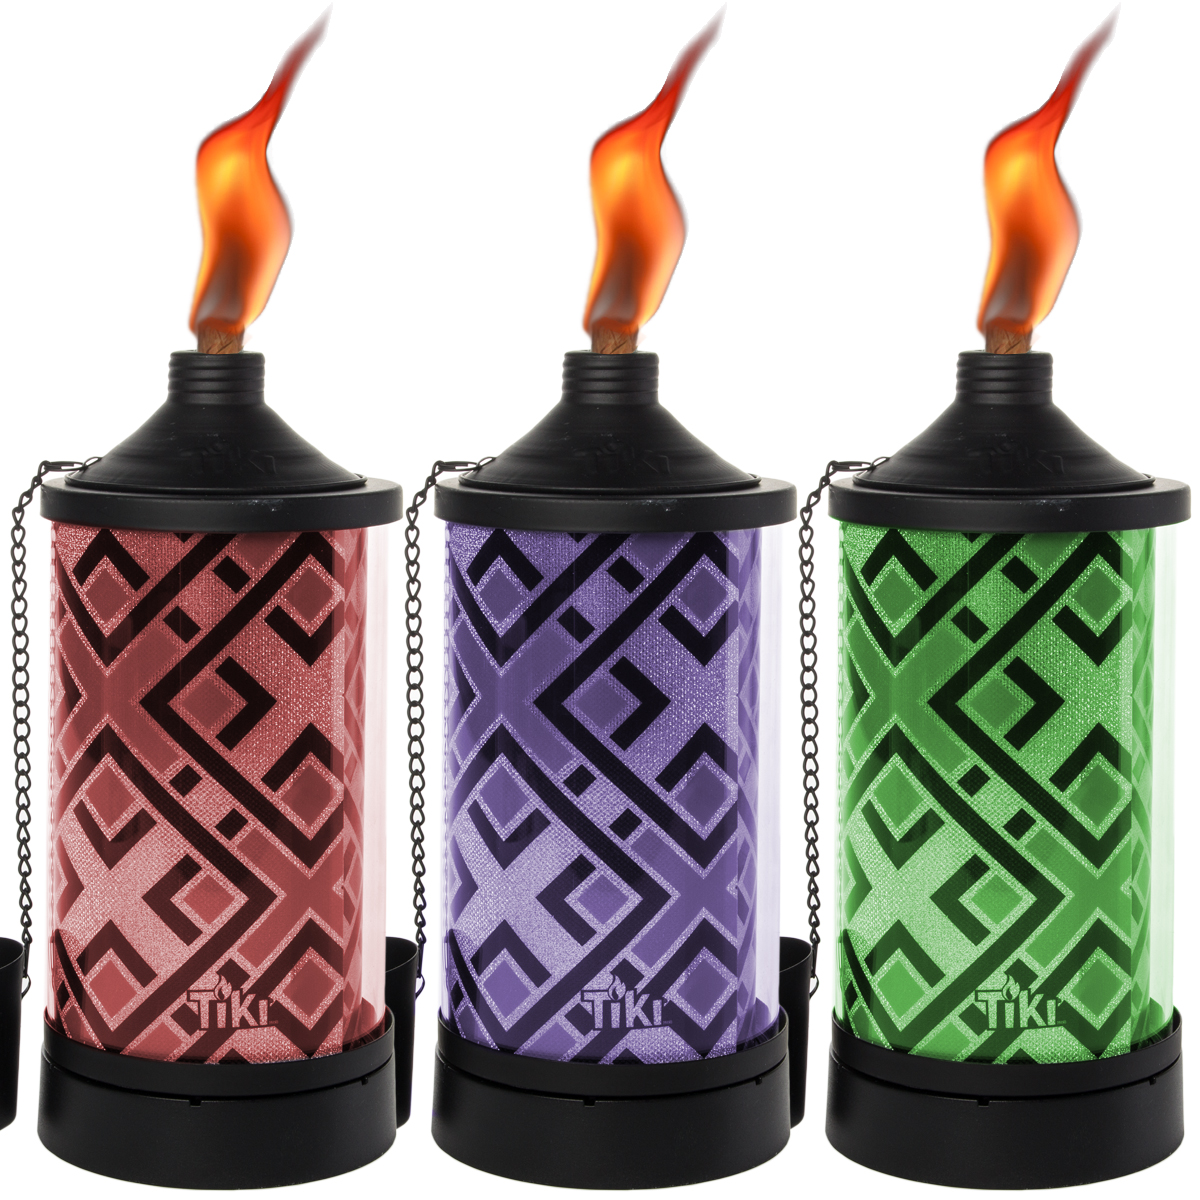 3 Pack TIKI Brand Tabletop Torches Color Changing